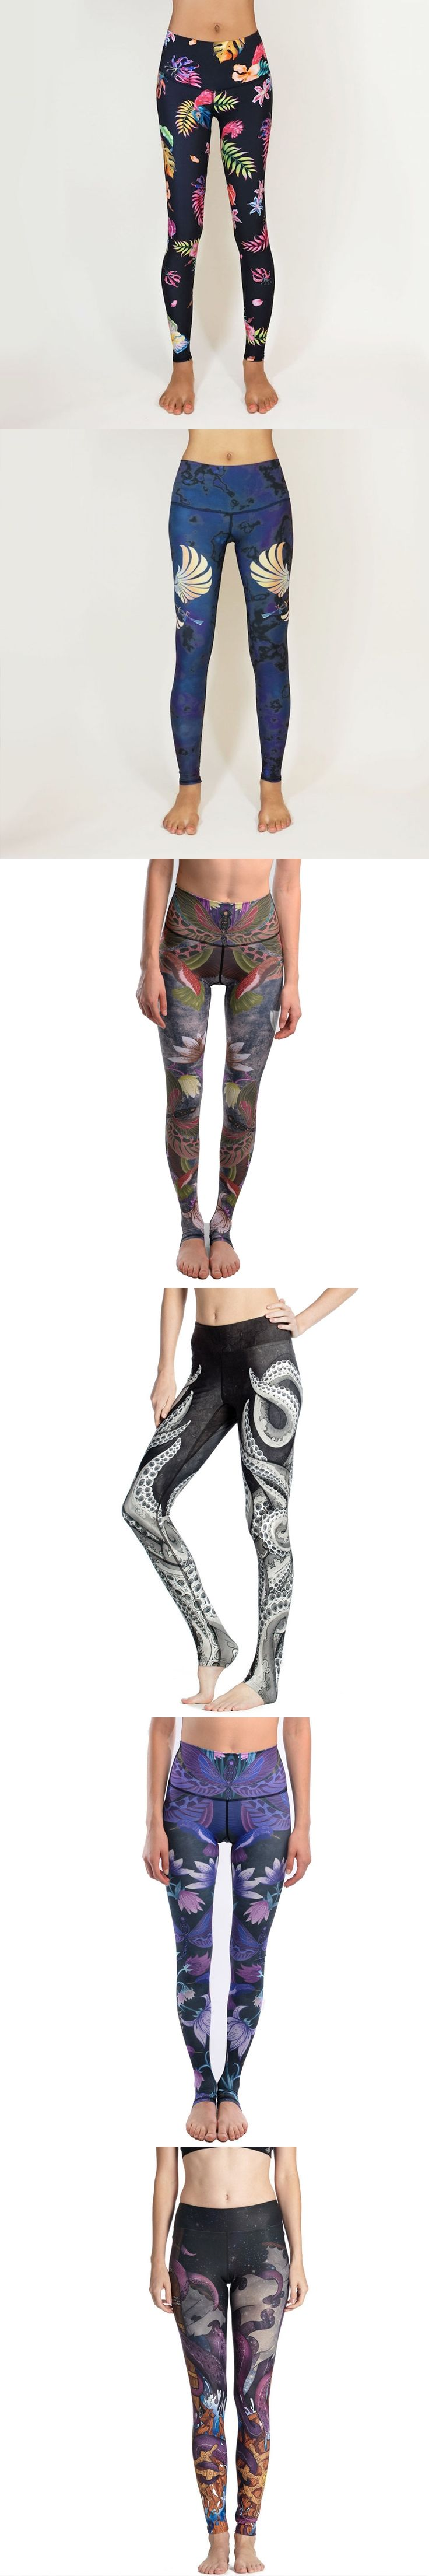 2016 Summer Women Pants Octopus Tentacle 3D Printing Leggings Fitness Leggins Ankle-Length Calzas Mujer For Girl Woman